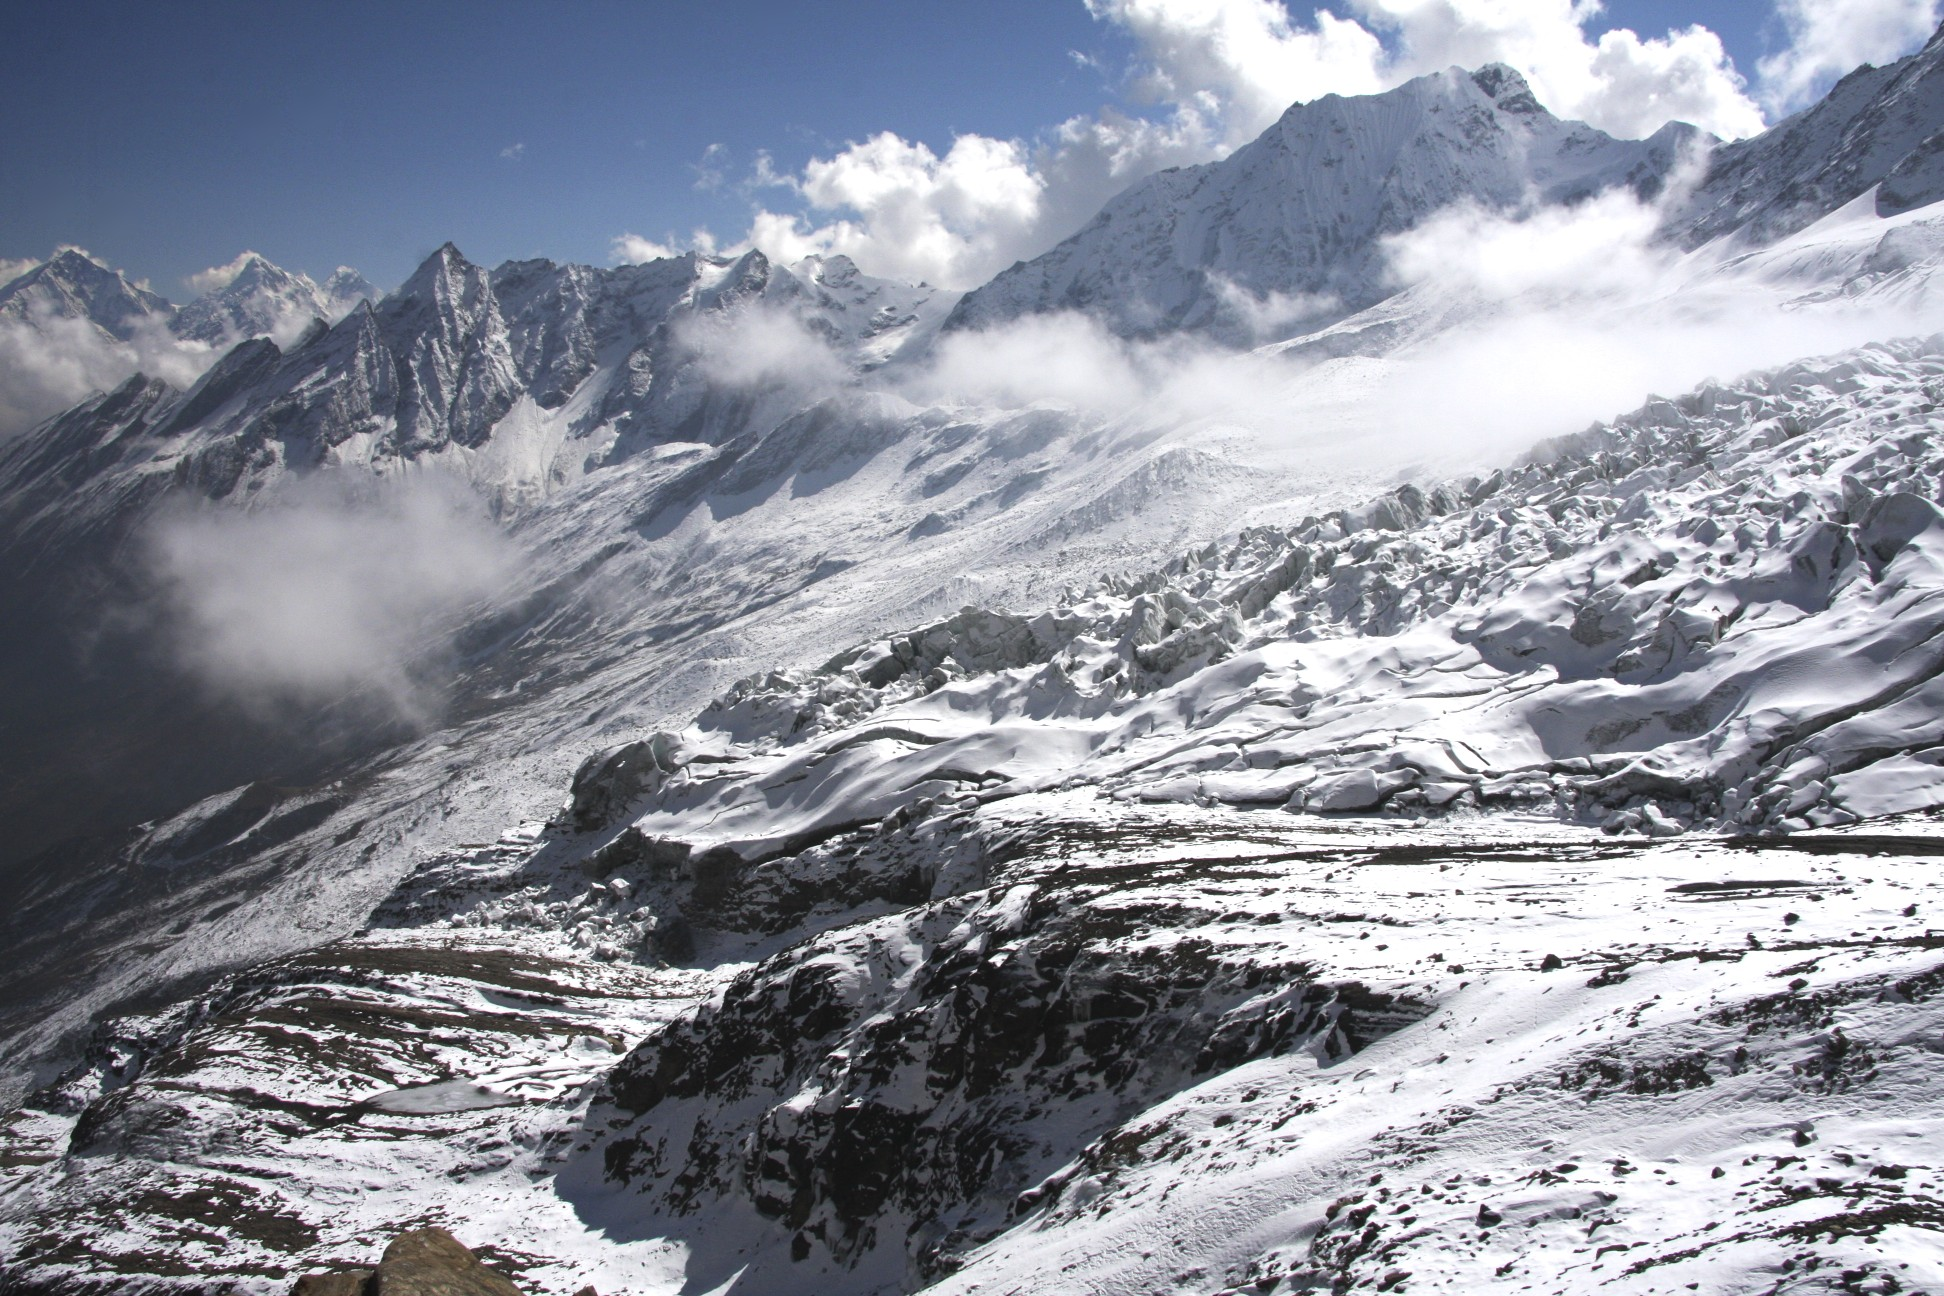 Lower slopes of Manaslu North